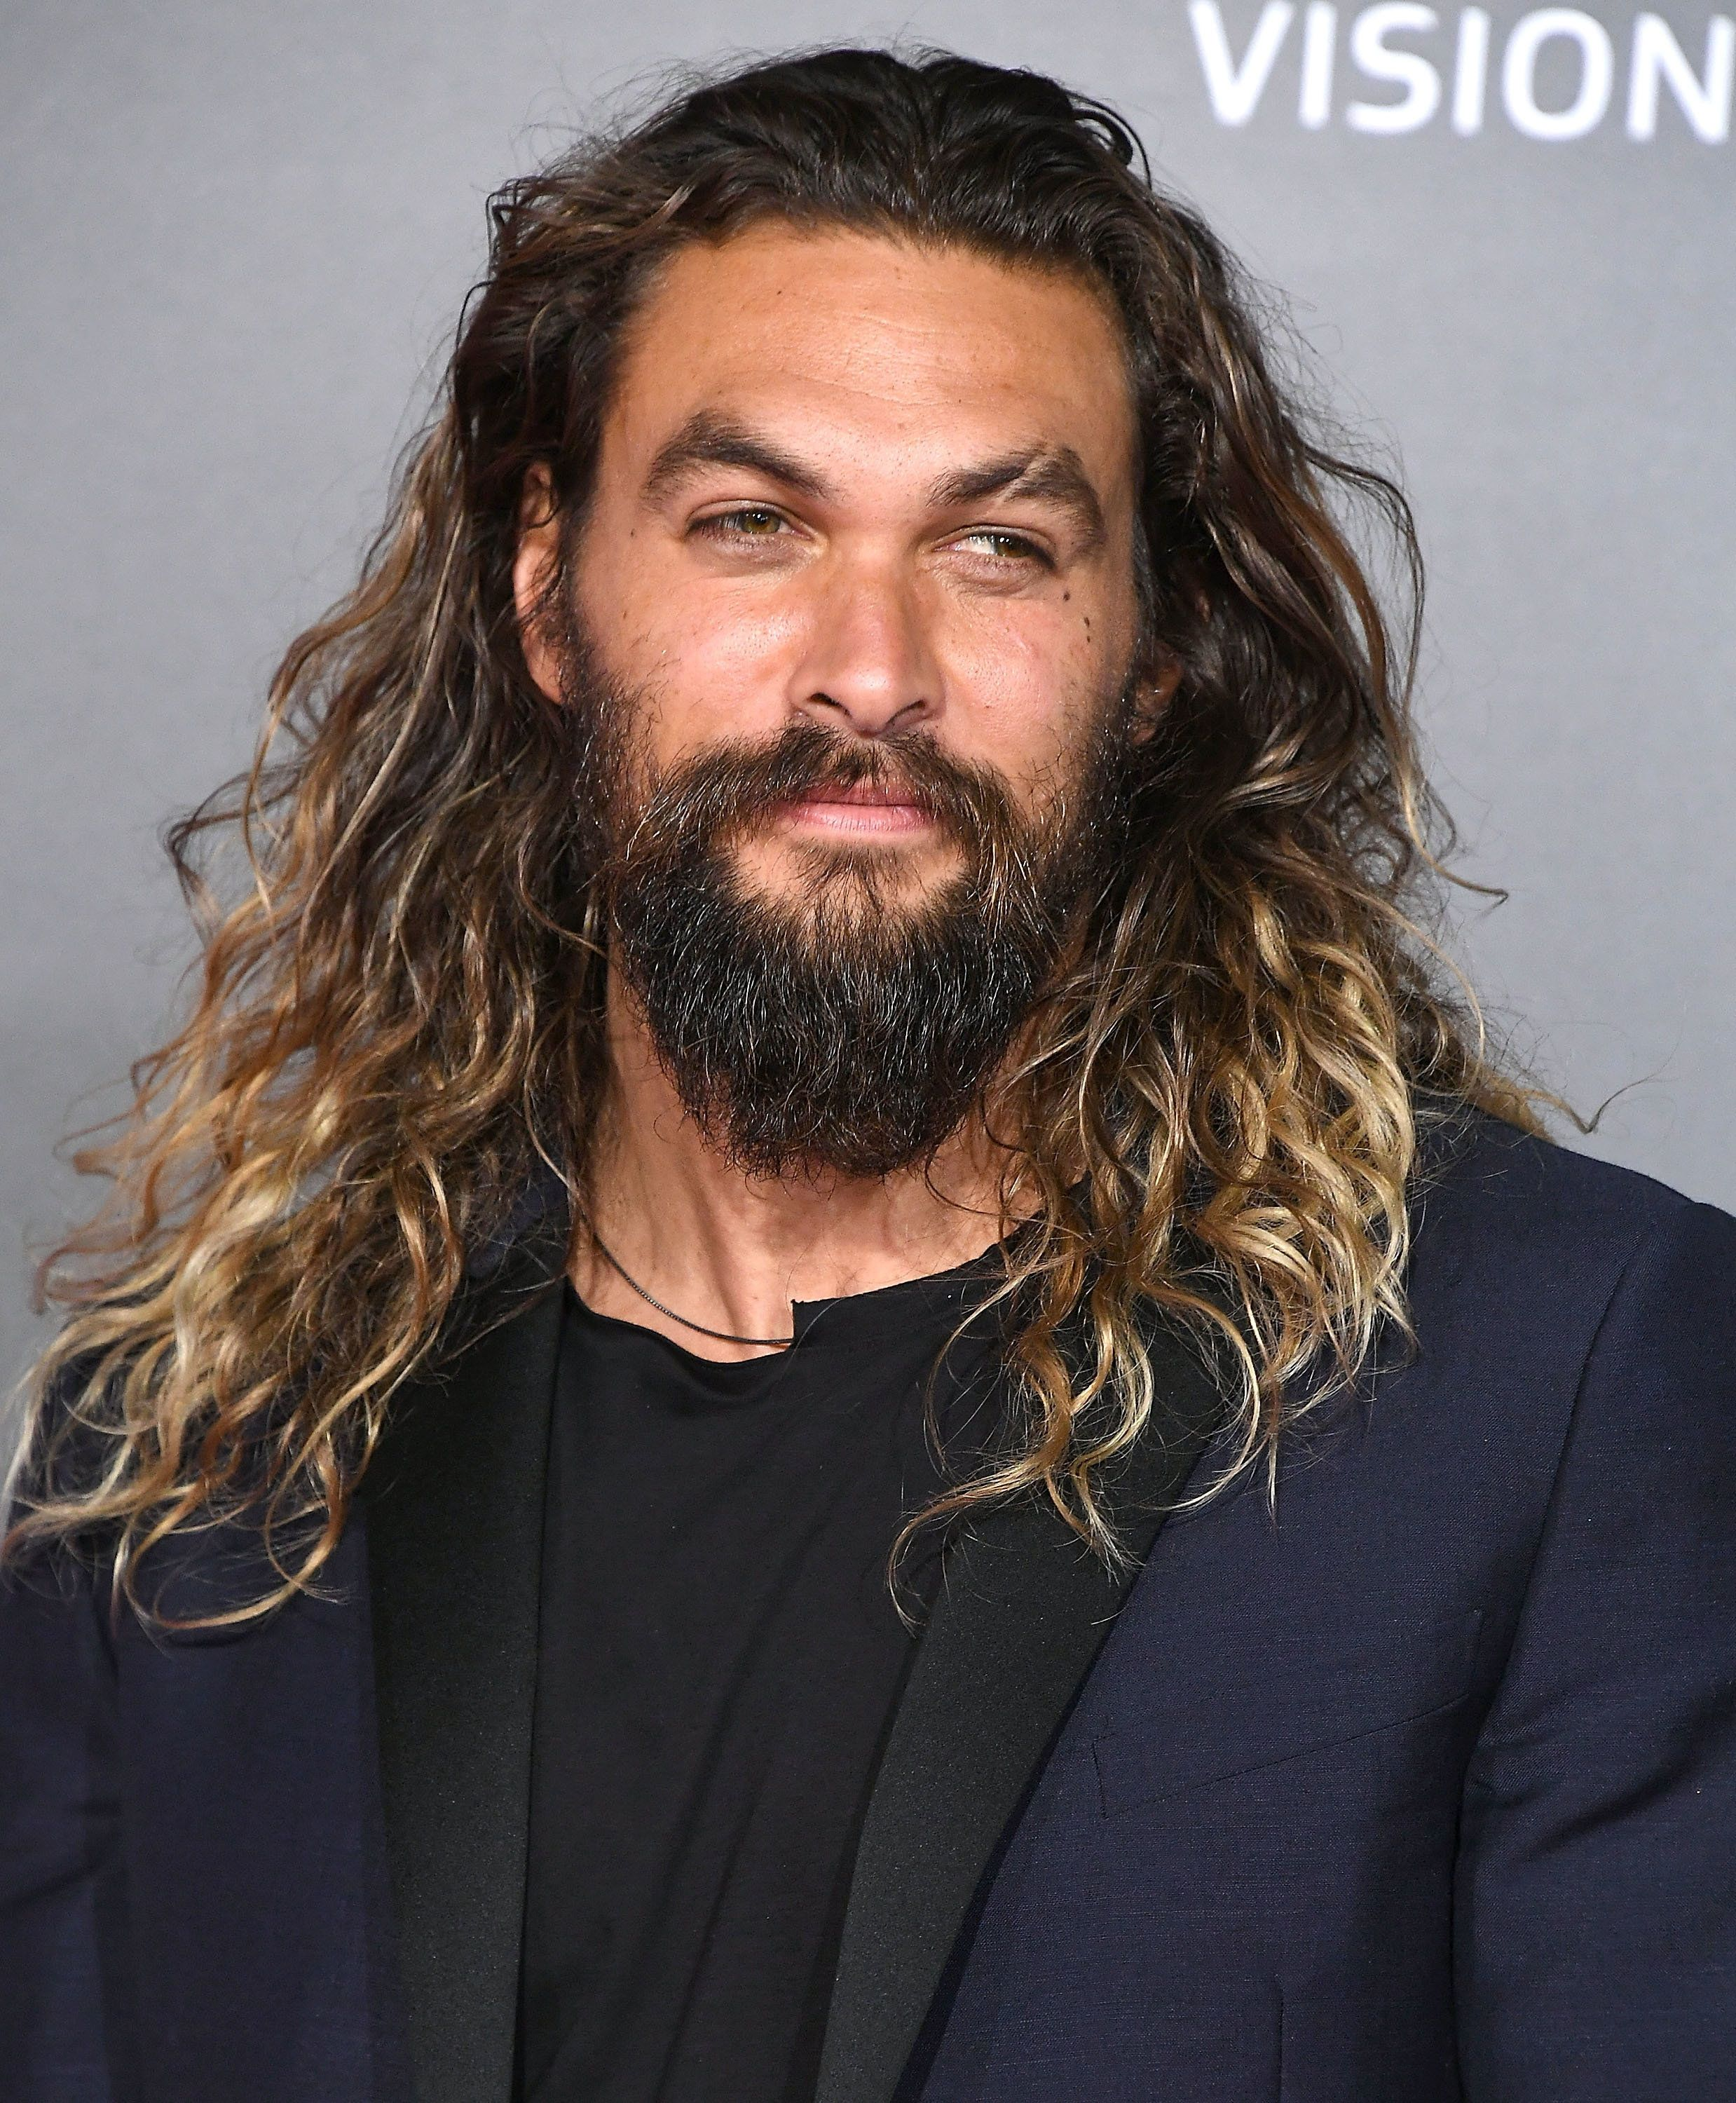 HOLLYWOOD, CA - NOVEMBER 13:  Jason Momoa arrives at the Premiere Of Warner Bros. Pictures' 'Justice League'  at Dolby Theatre on November 13, 2017 in Hollywood, California.  (Photo by Steve Granitz/WireImage)